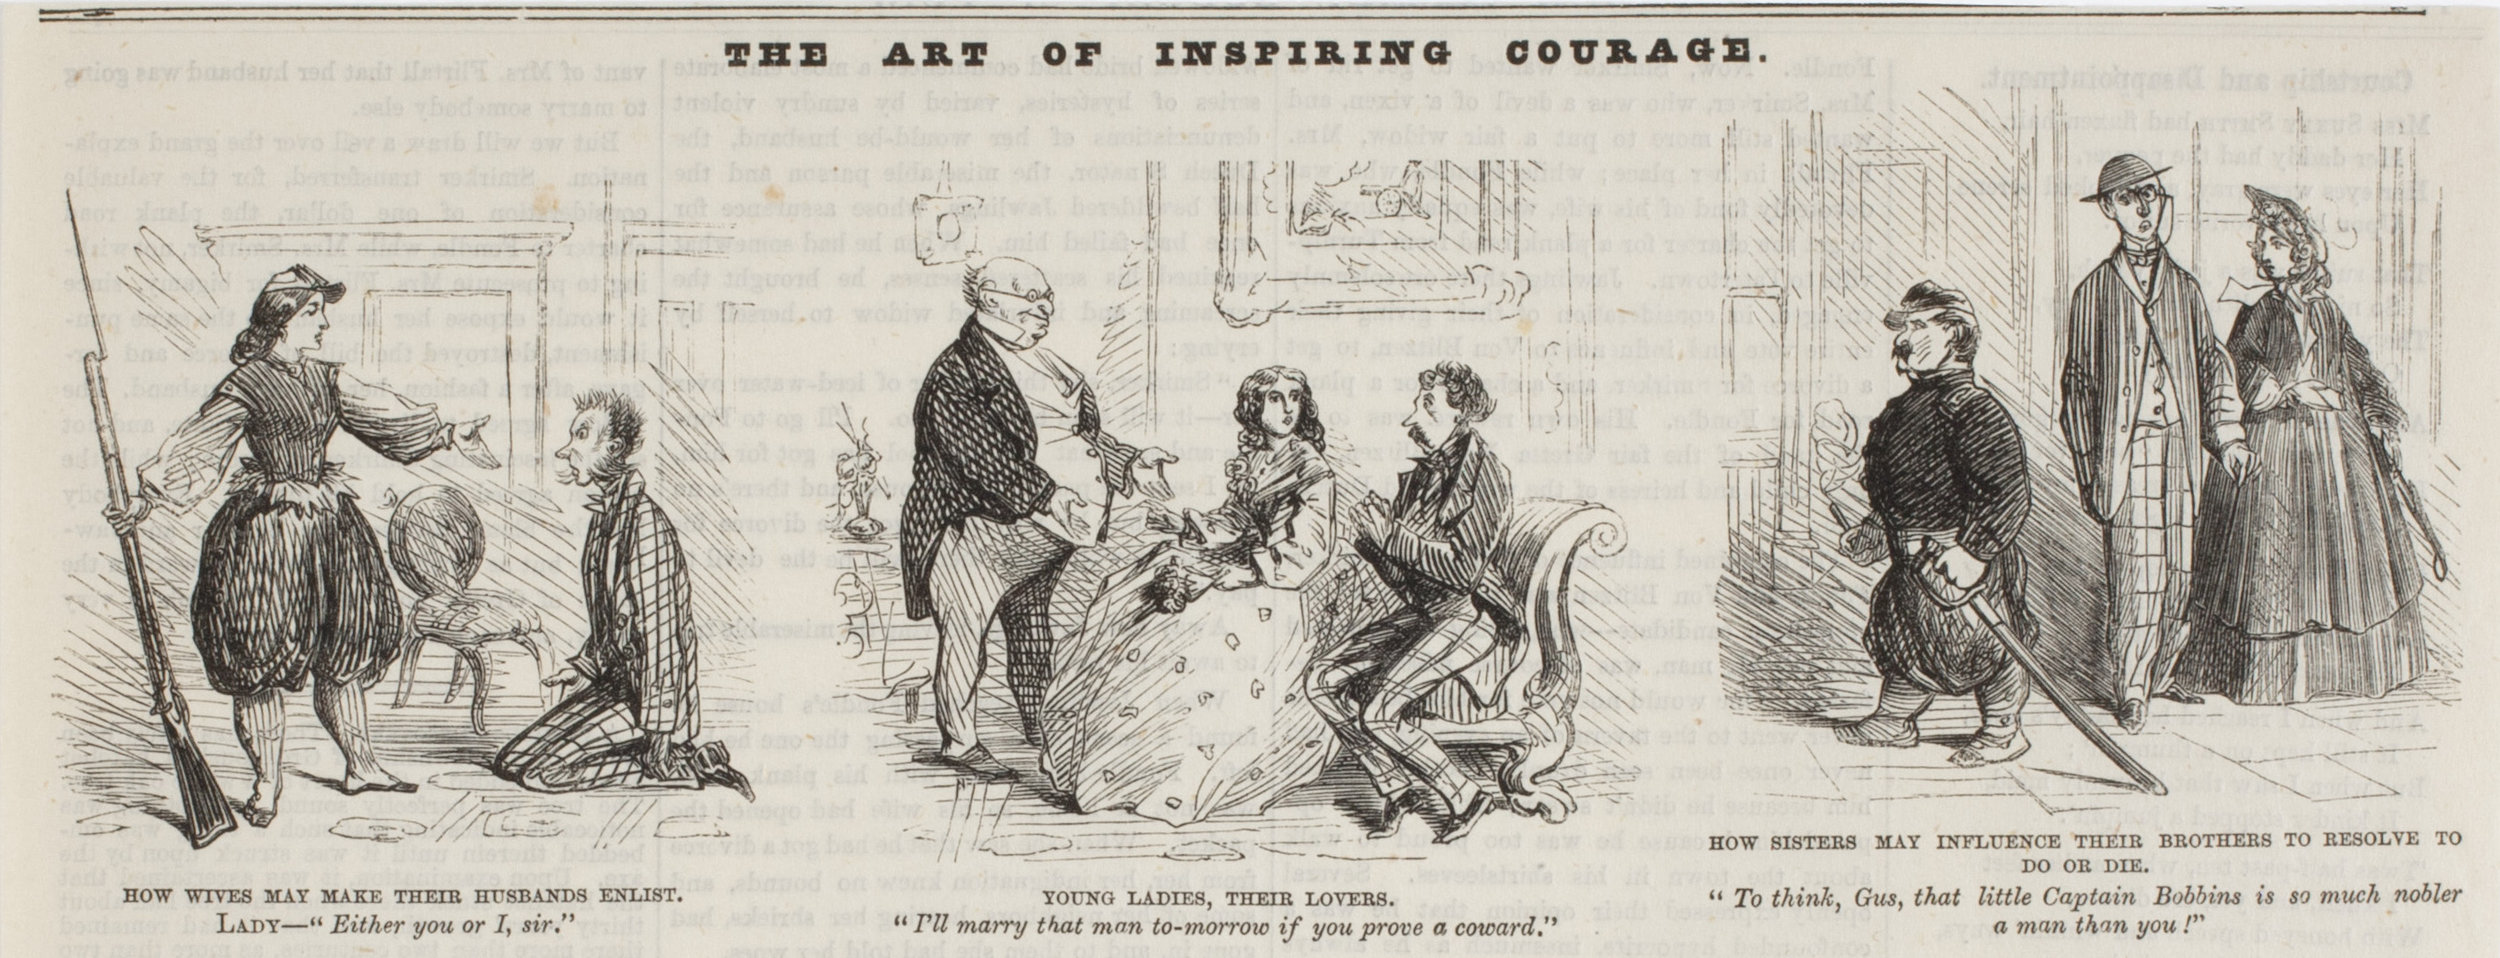 """The ladies were dead serious about getting their menfolk to join up for the cause, North and South. It's said that at least one patriotic lady sent a dress to her paramour through the mail, along a note that read """"Enlist, or wear this."""" Ooooh, BURN.   Credit, The American Antiquarian Society"""